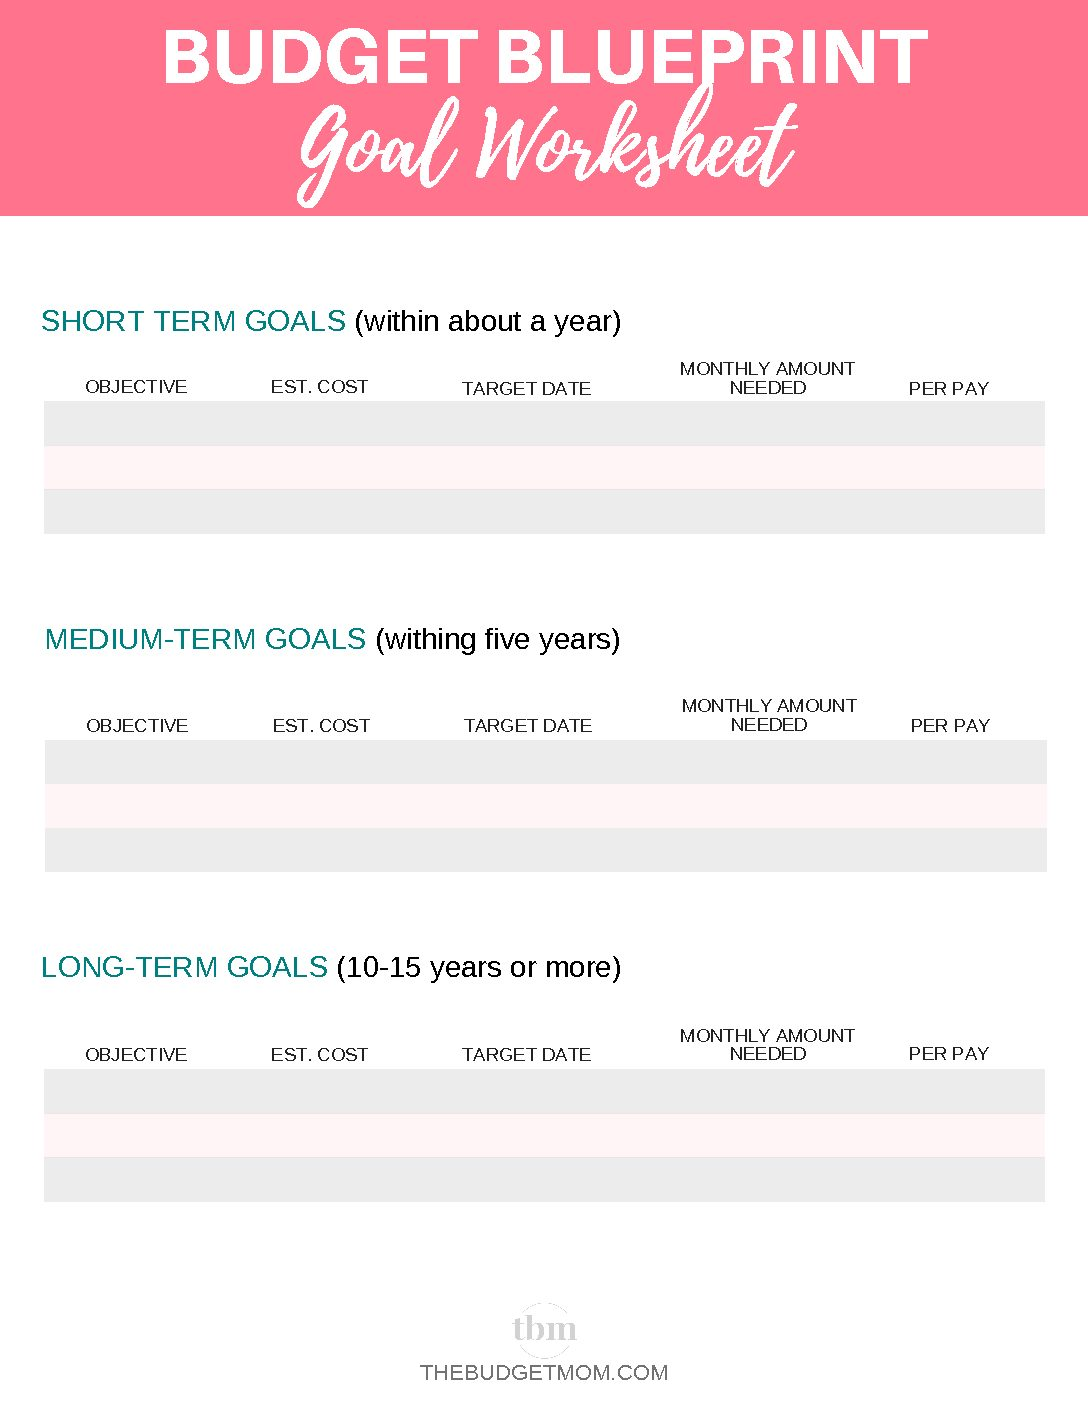 Budget Blueprint Goal Worksheet